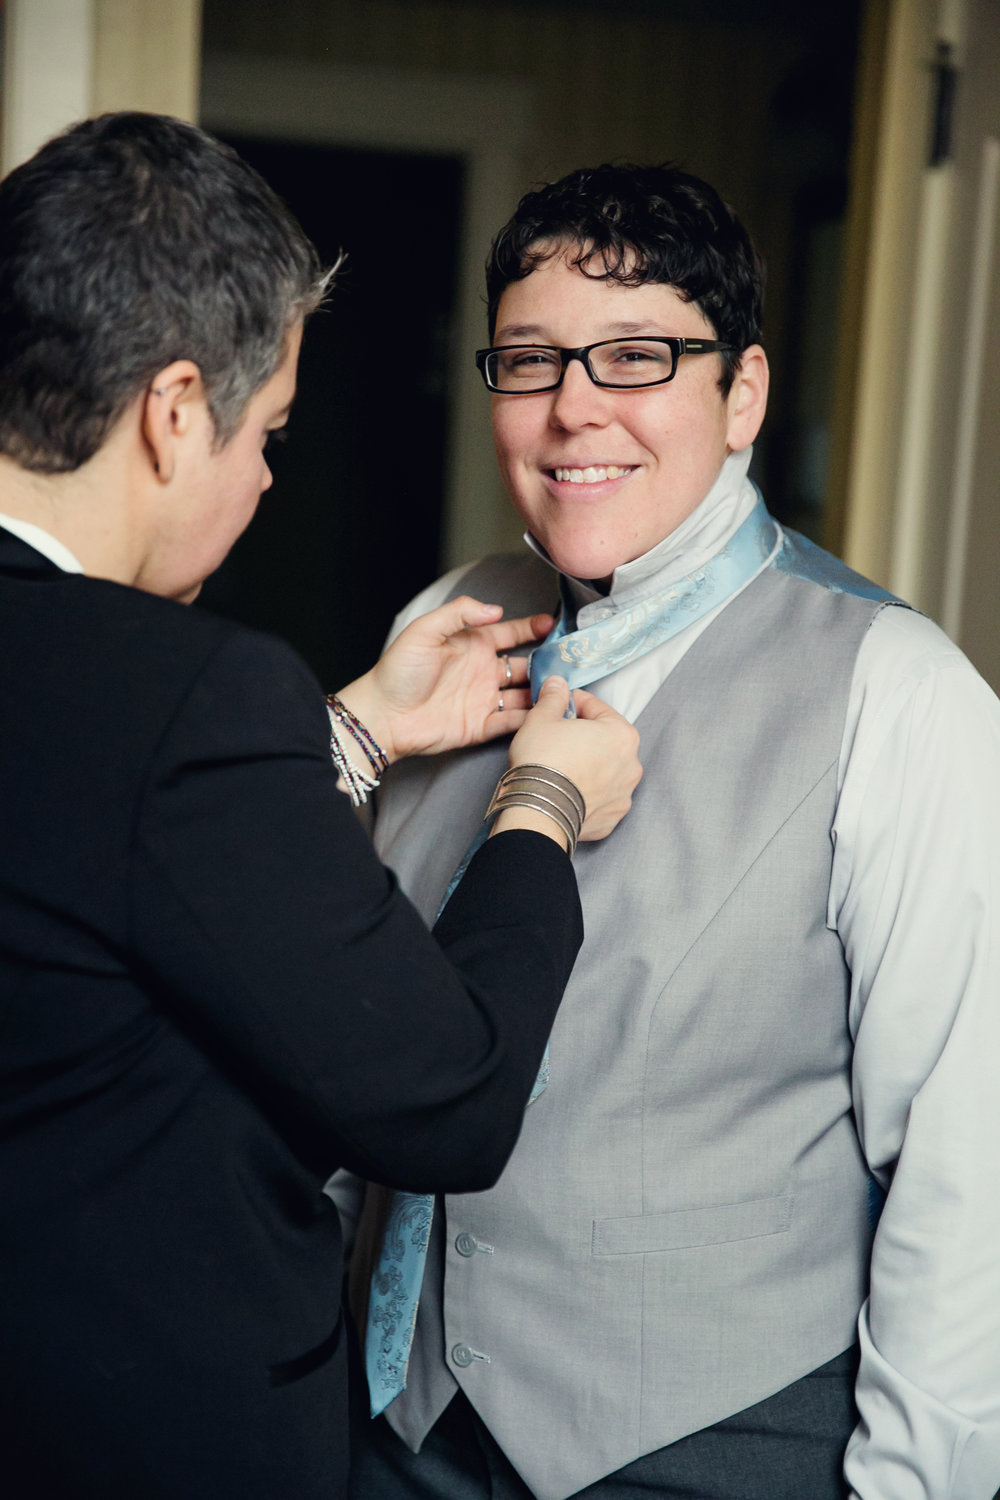 Tying a tie for bride